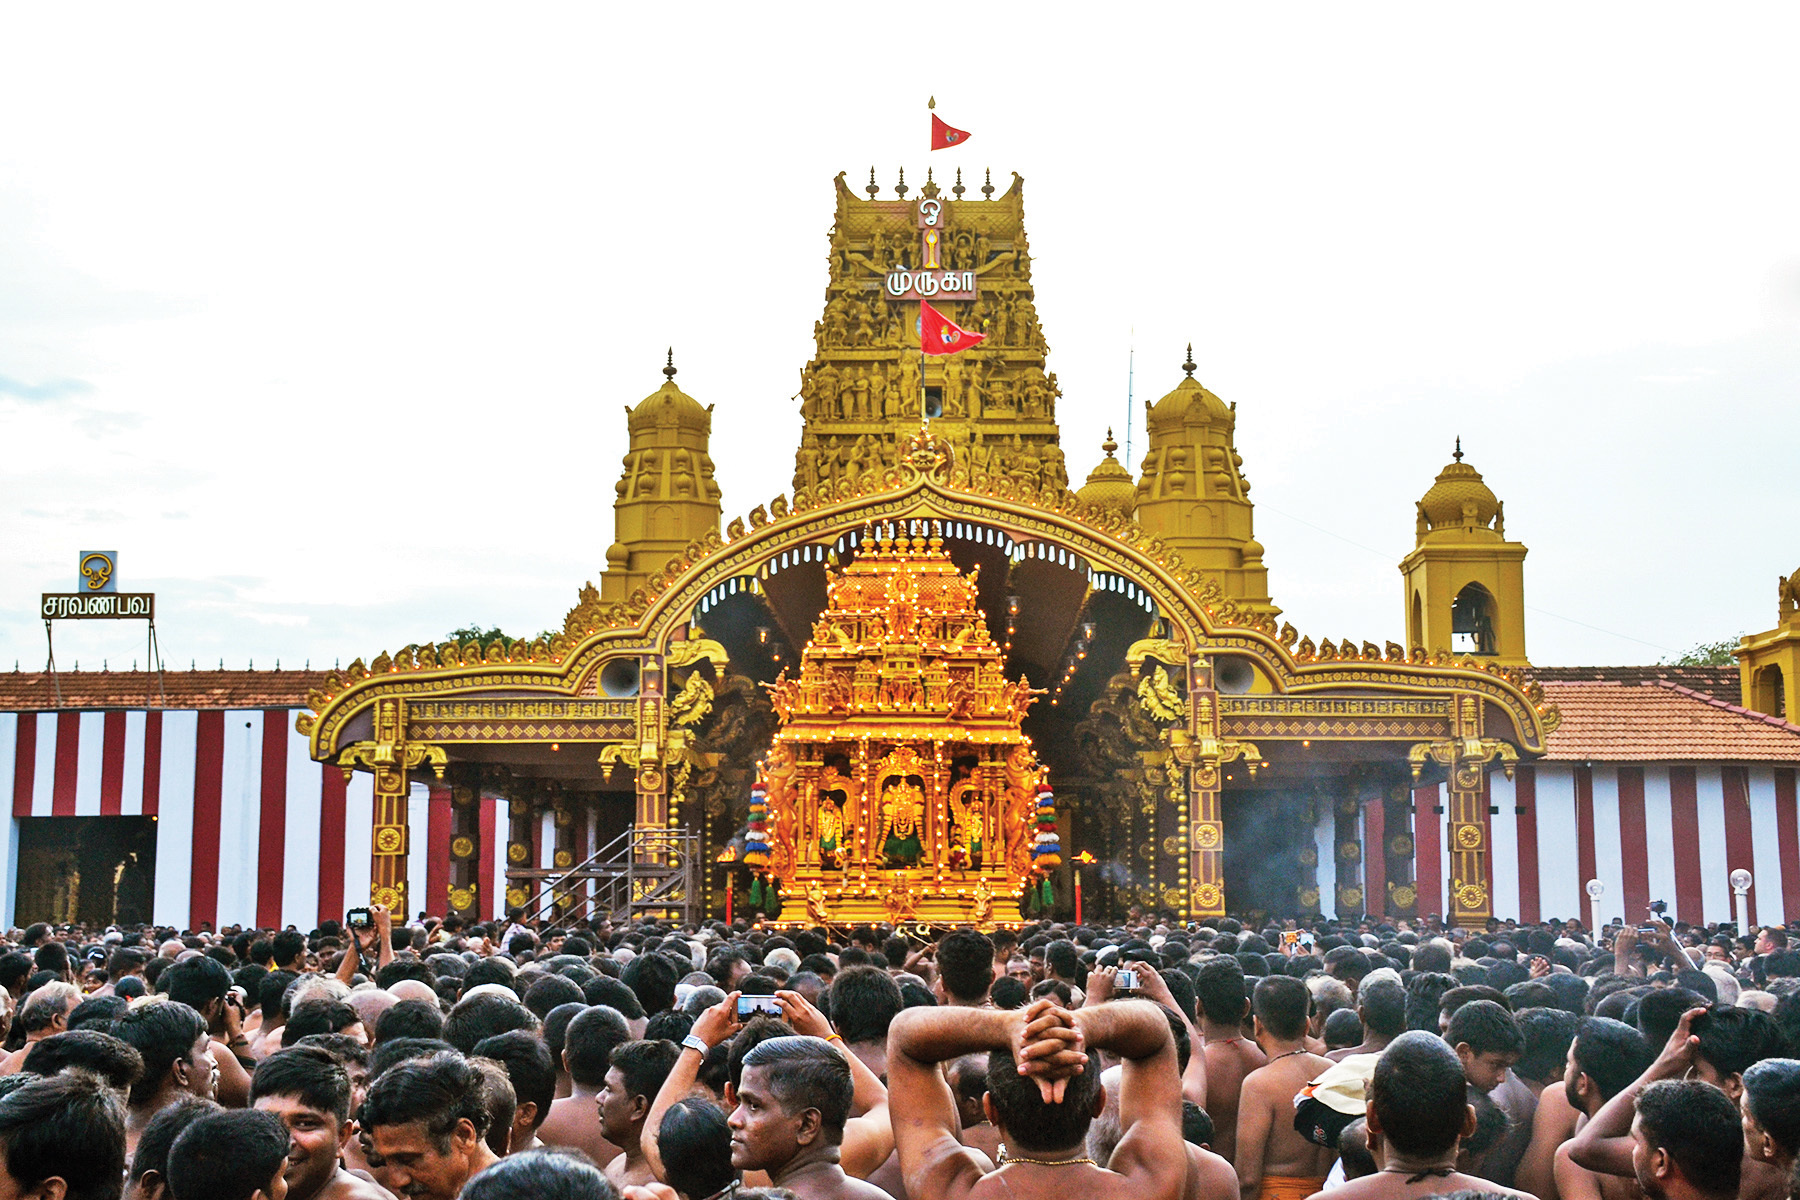 Nallur Festival – A magnificent adoration of Lord Murugan